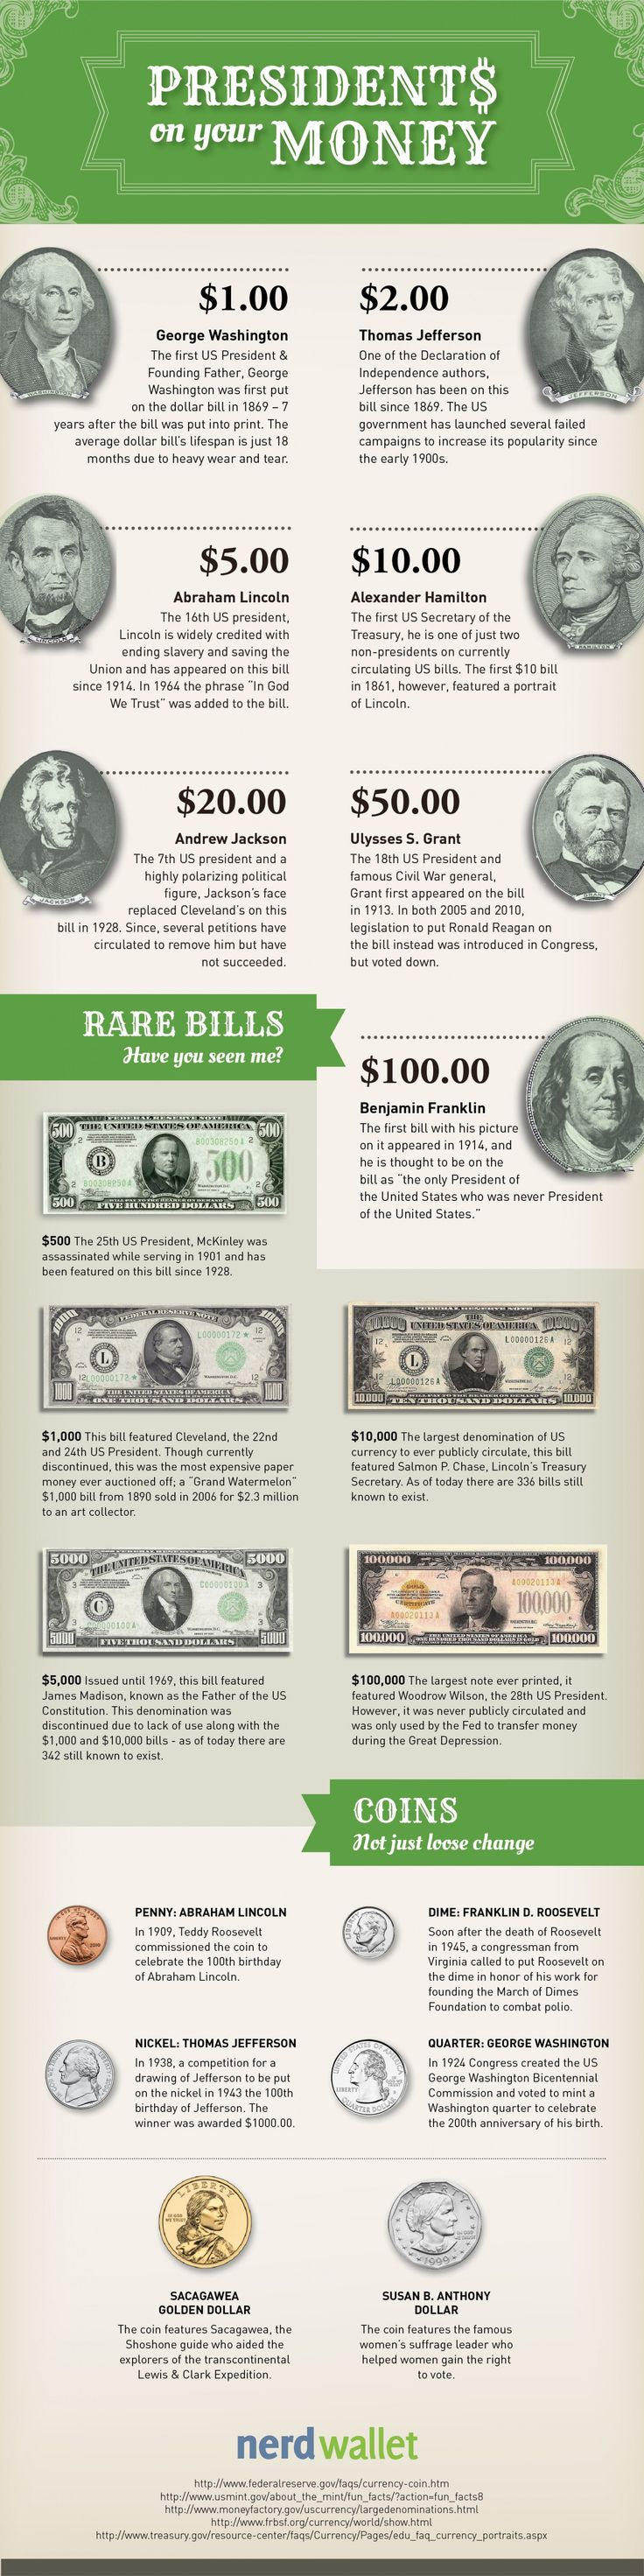 "In honor of U.S. President's Day, NerdWallet researched how our historical leaders came to be on our money. The Treasury.gov Resource Center says, ""Our records do not suggest why certain Presidents and statesmen were chosen for specific denominations."" Is that really so? NerdWallet breaks down which presidents are featured on U.S. currency – including small bills, coins, and rare denominations – and why. Rare Gold, Silver and Copper Coins and Currency #TheHappyCoin #Coins #Gold #Silver…"